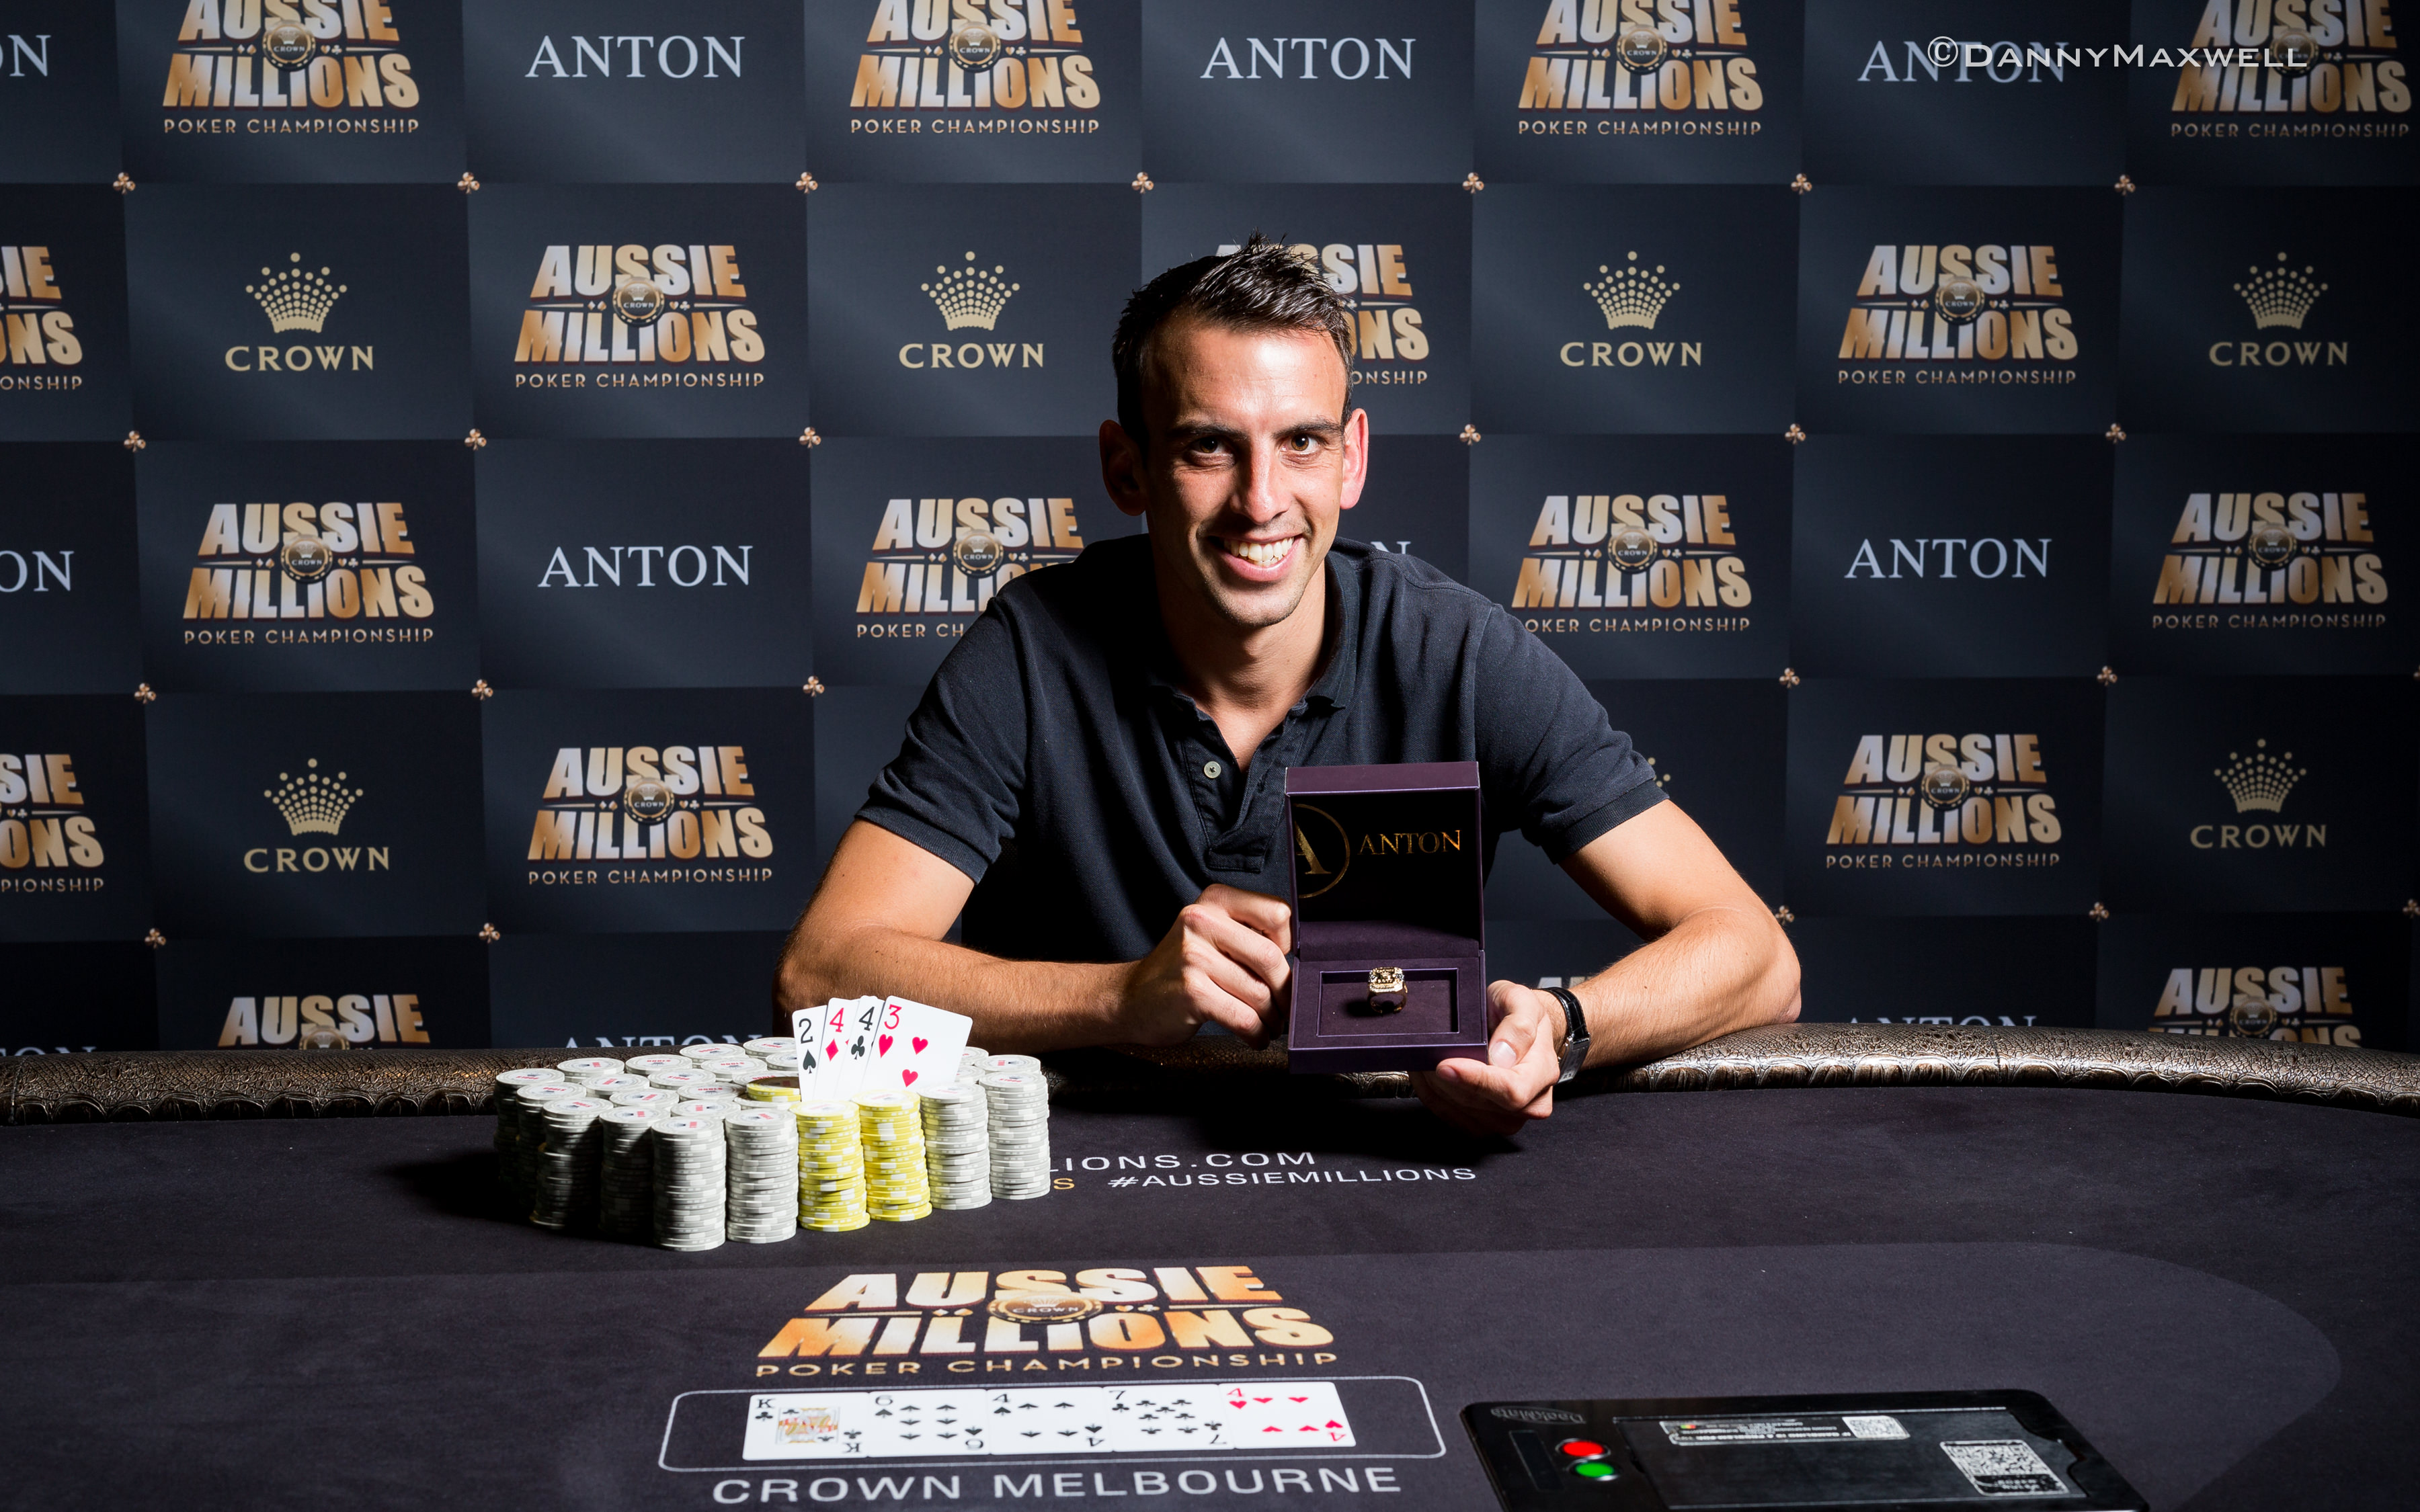 Corentin Hillion - Event 16 Winner Aussie Millions 2017